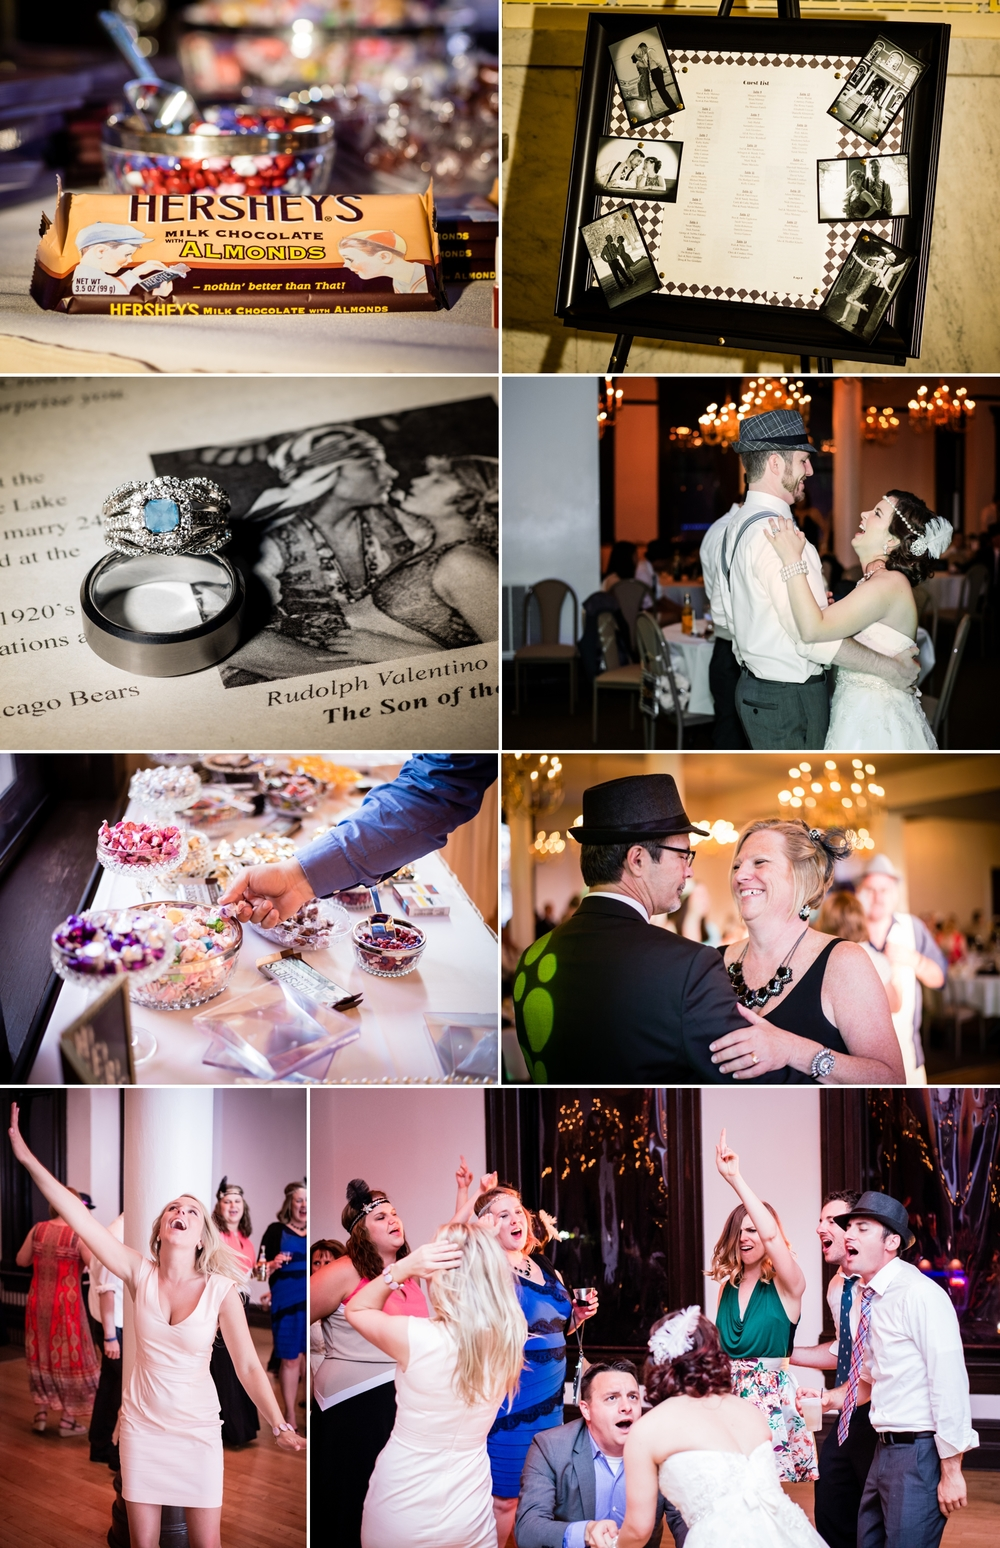 1920's themed wedding reception at the Crown Point Courthouse banquet room.